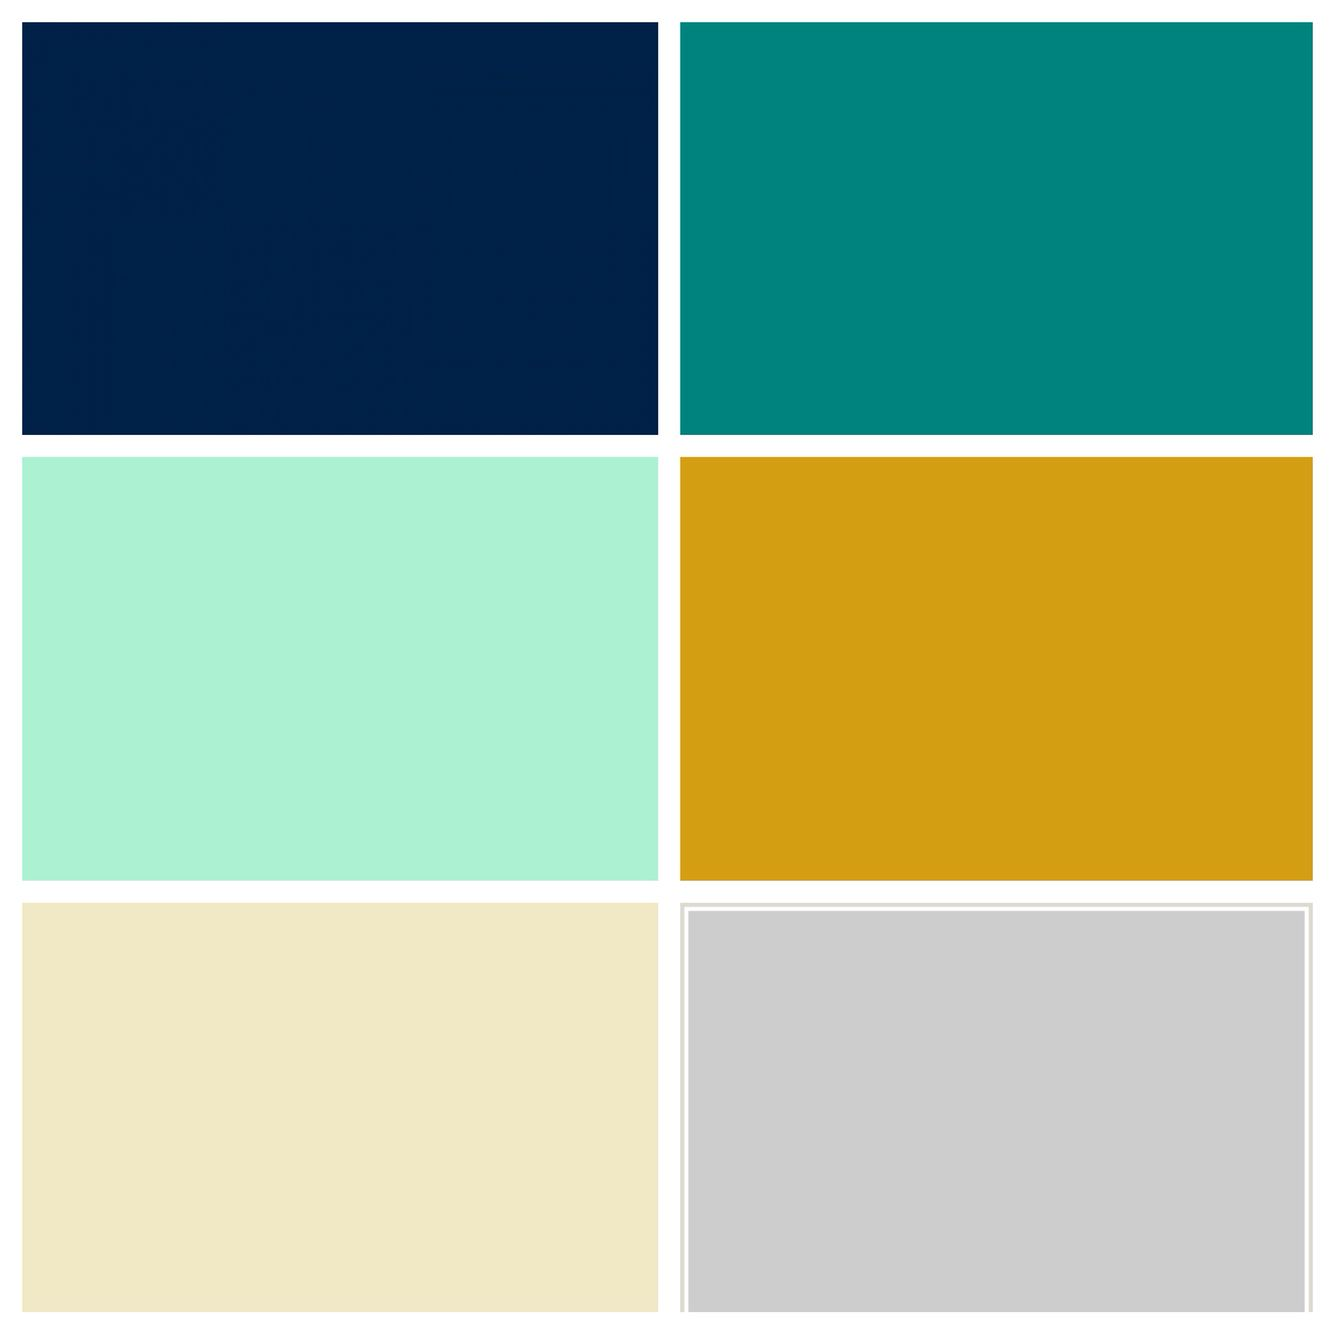 Nursery color pallet: navy, teal, mint, mustard, beige, light grey, and white